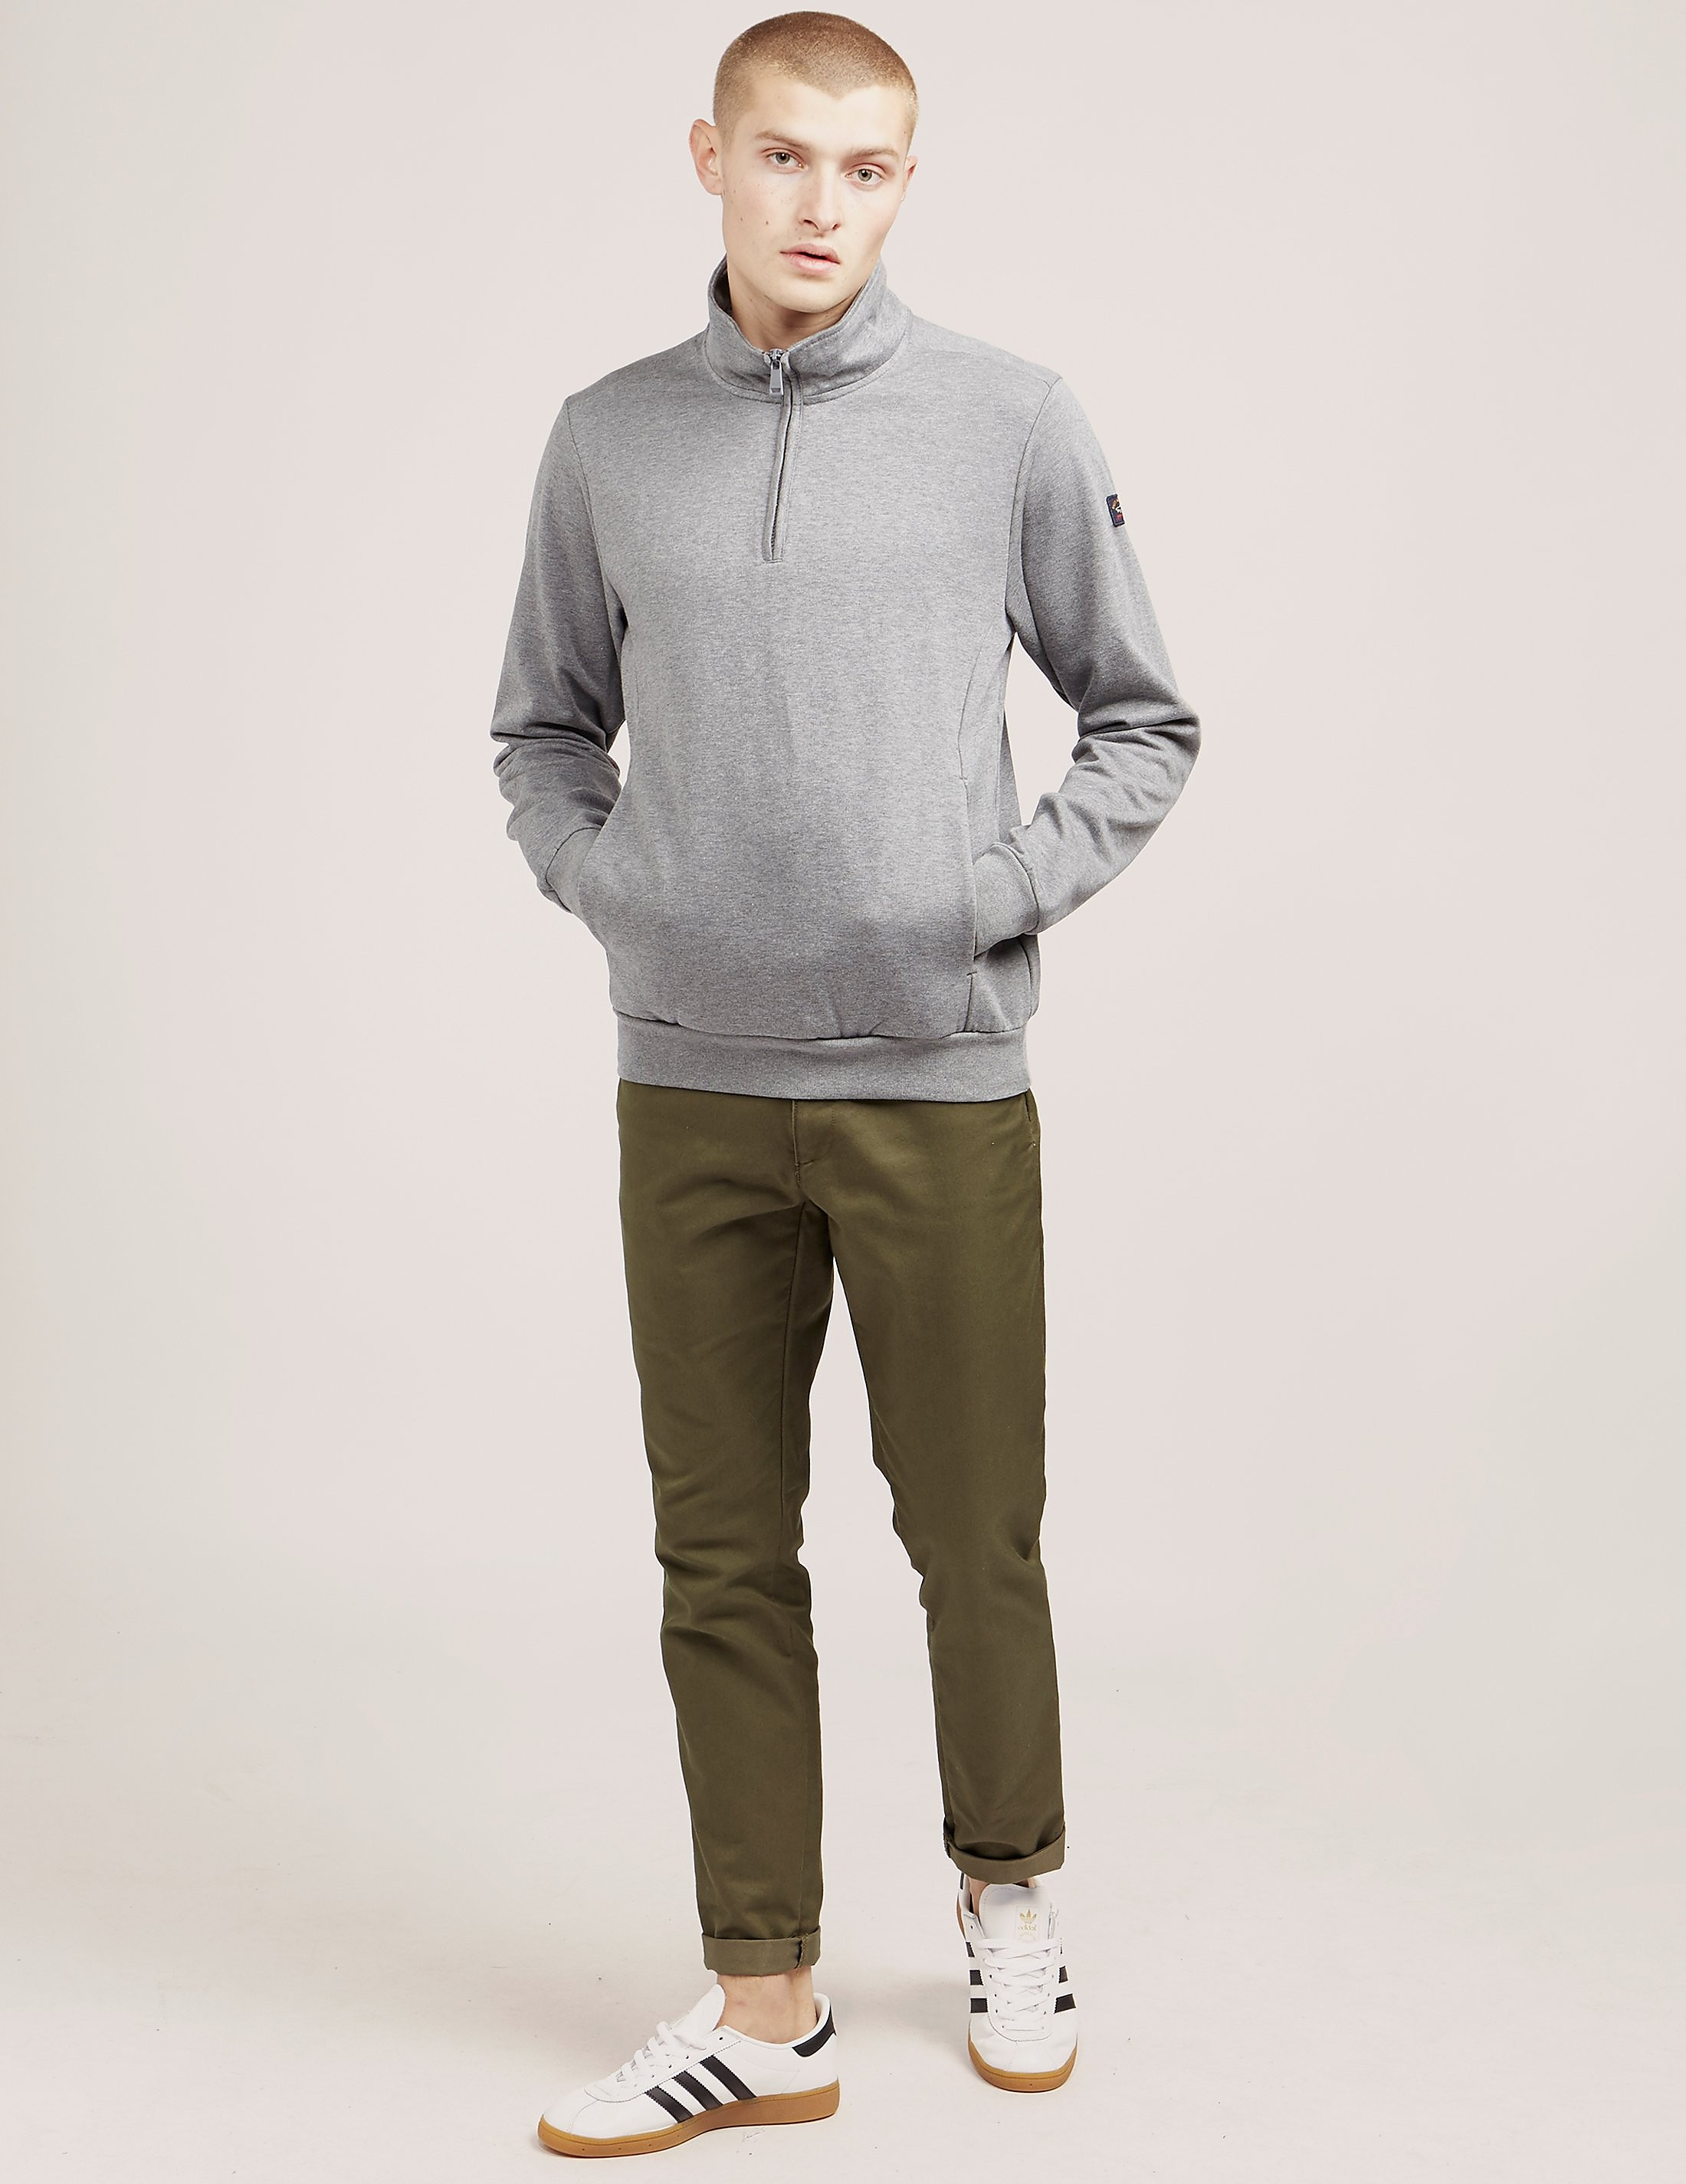 Paul and Shark Half Zip Sweatshirt